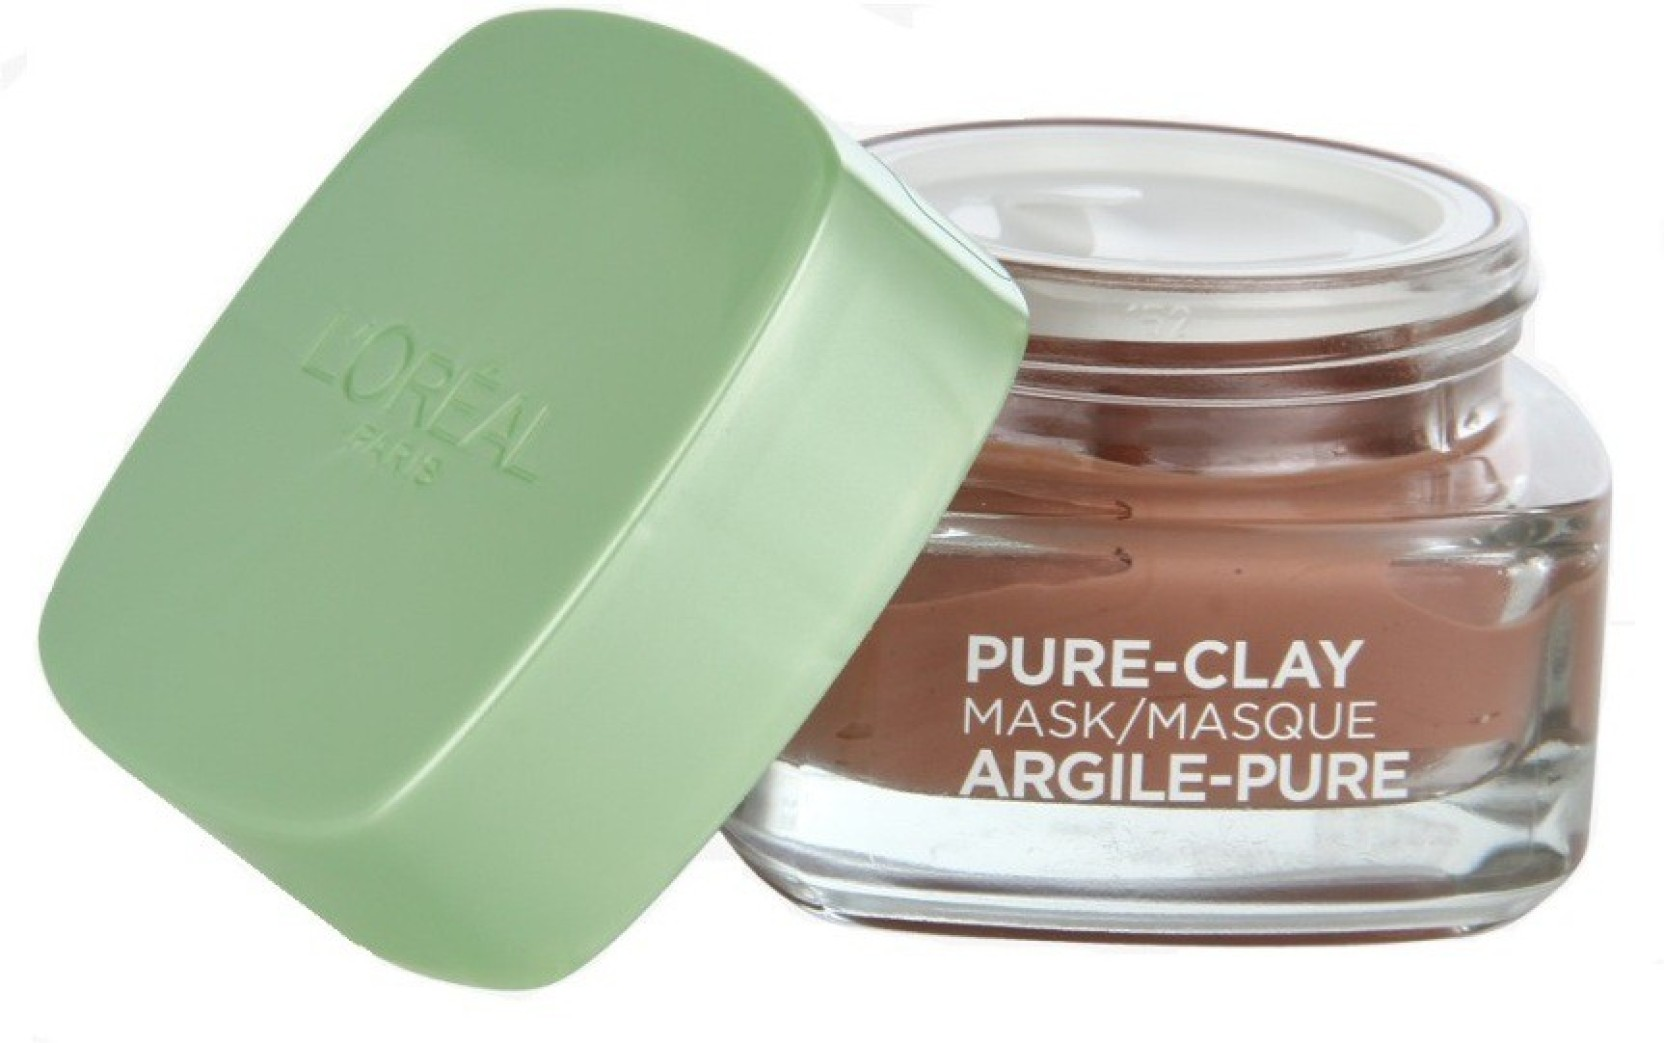 L'Oreal Paris Pure Clay Exfoliating And Refining Face Mask